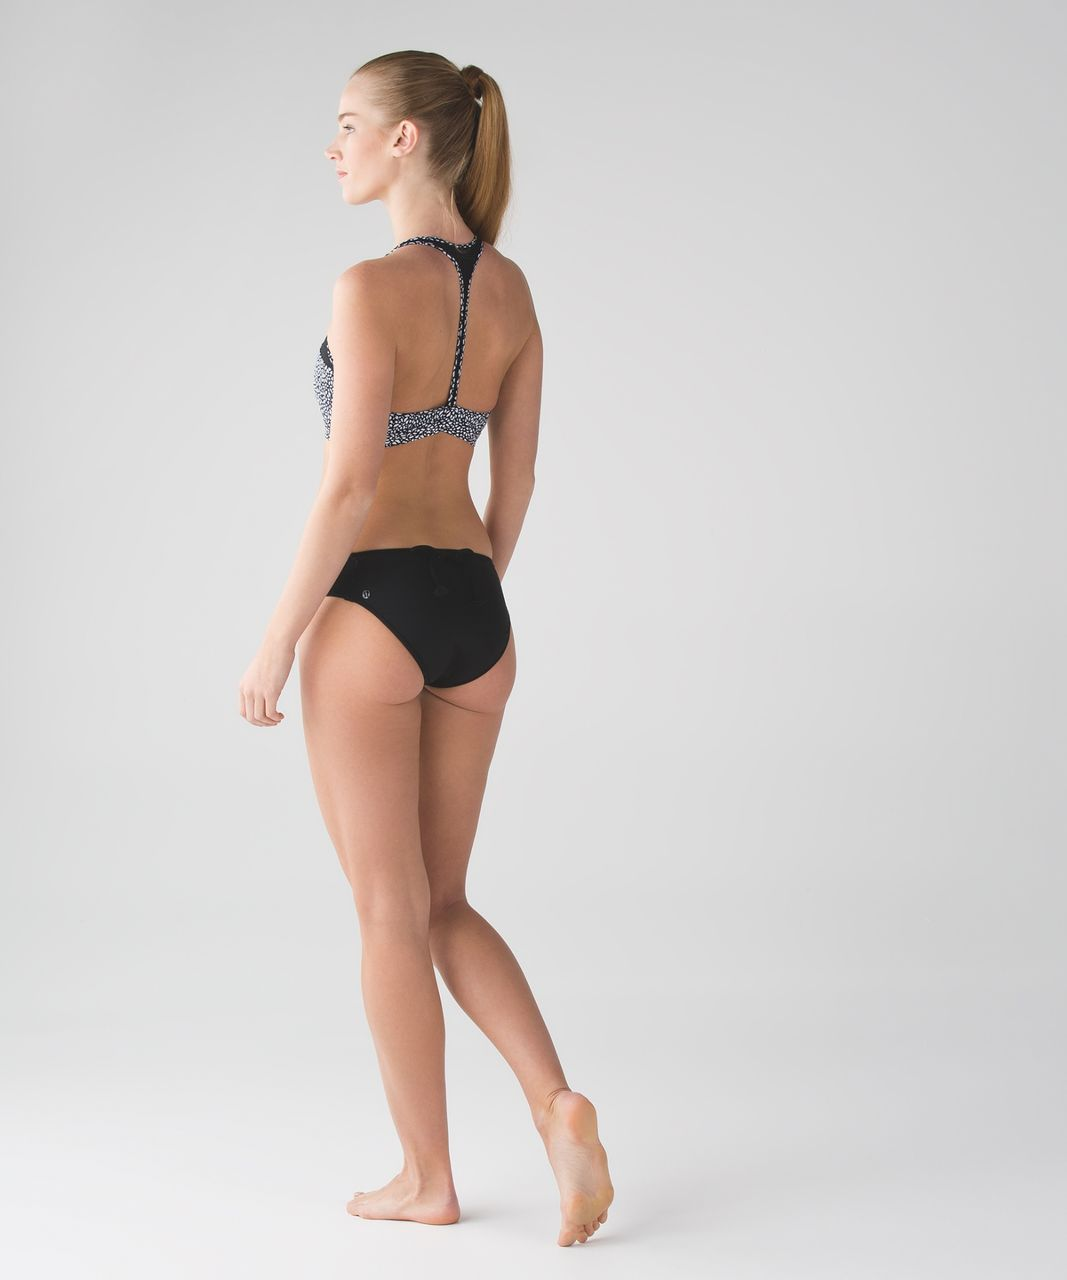 Lululemon Tidal Flow Bikini - Black / Miss Mosaic Black